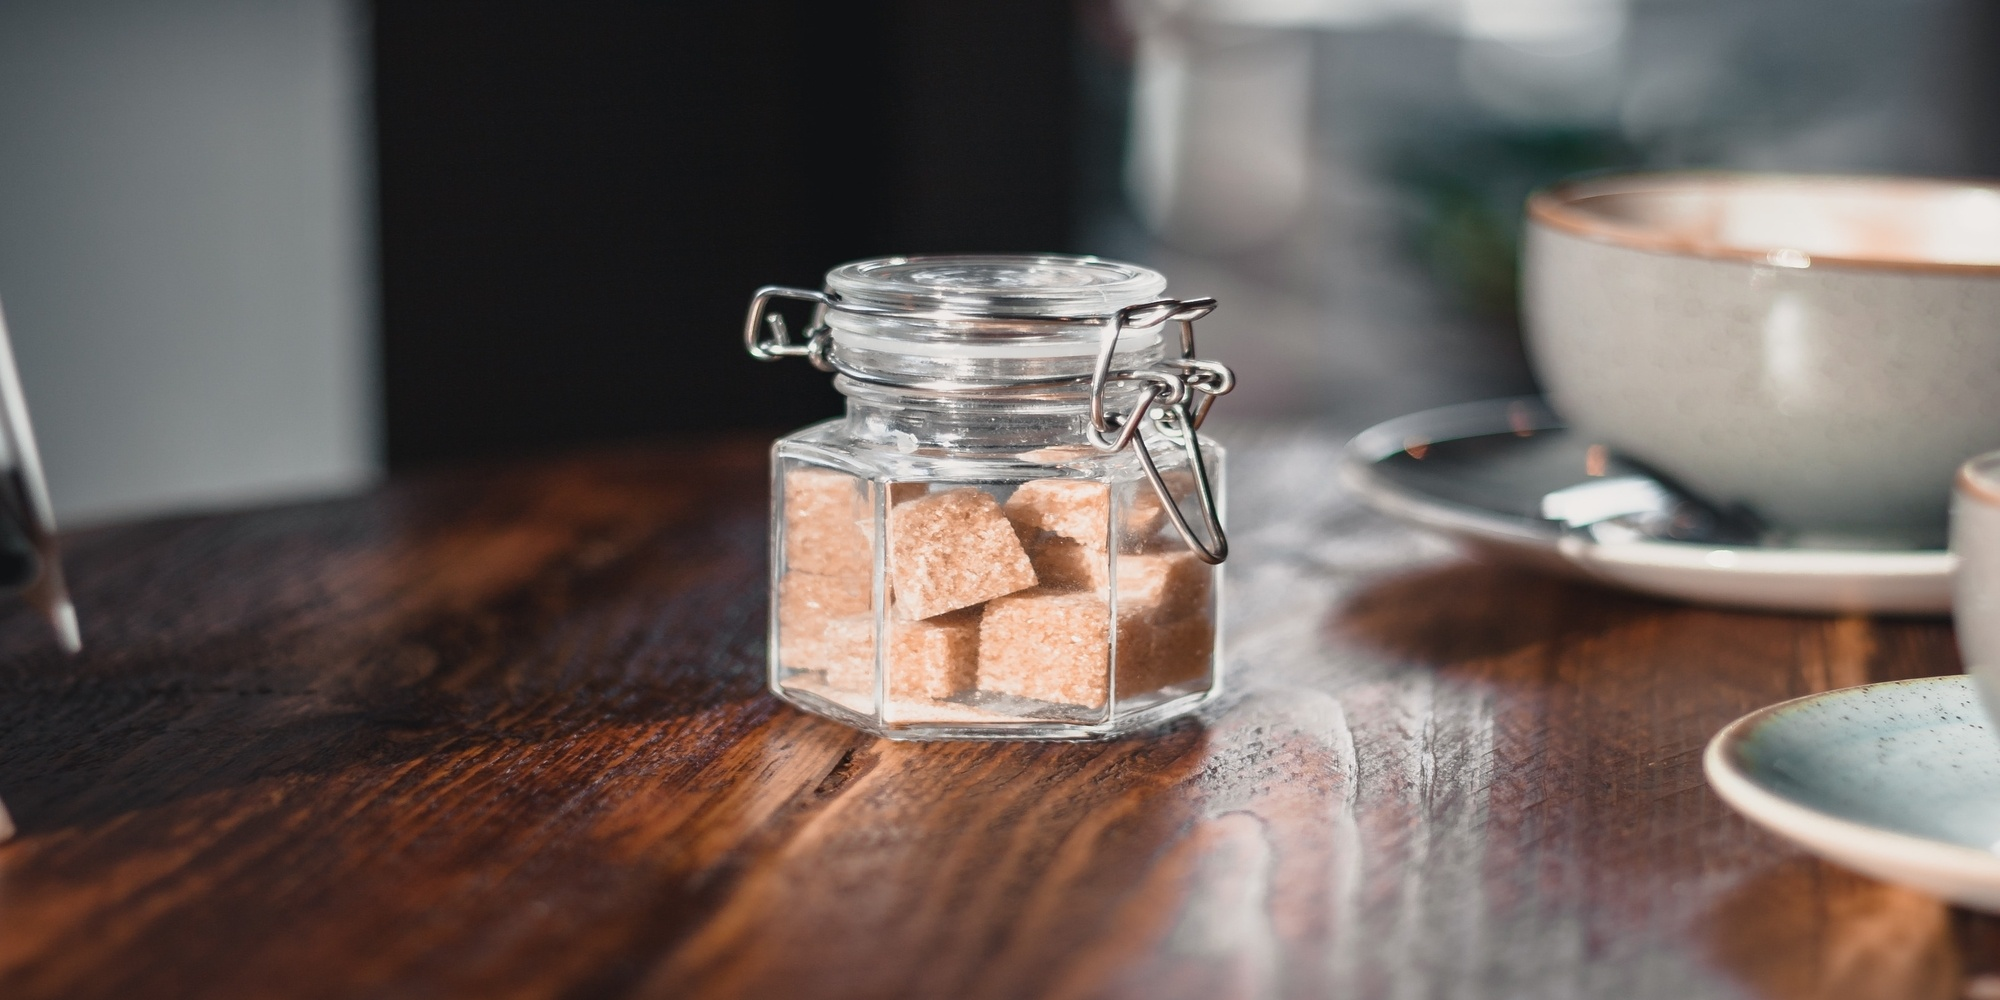 jar on taable with brown sugar cubes inside